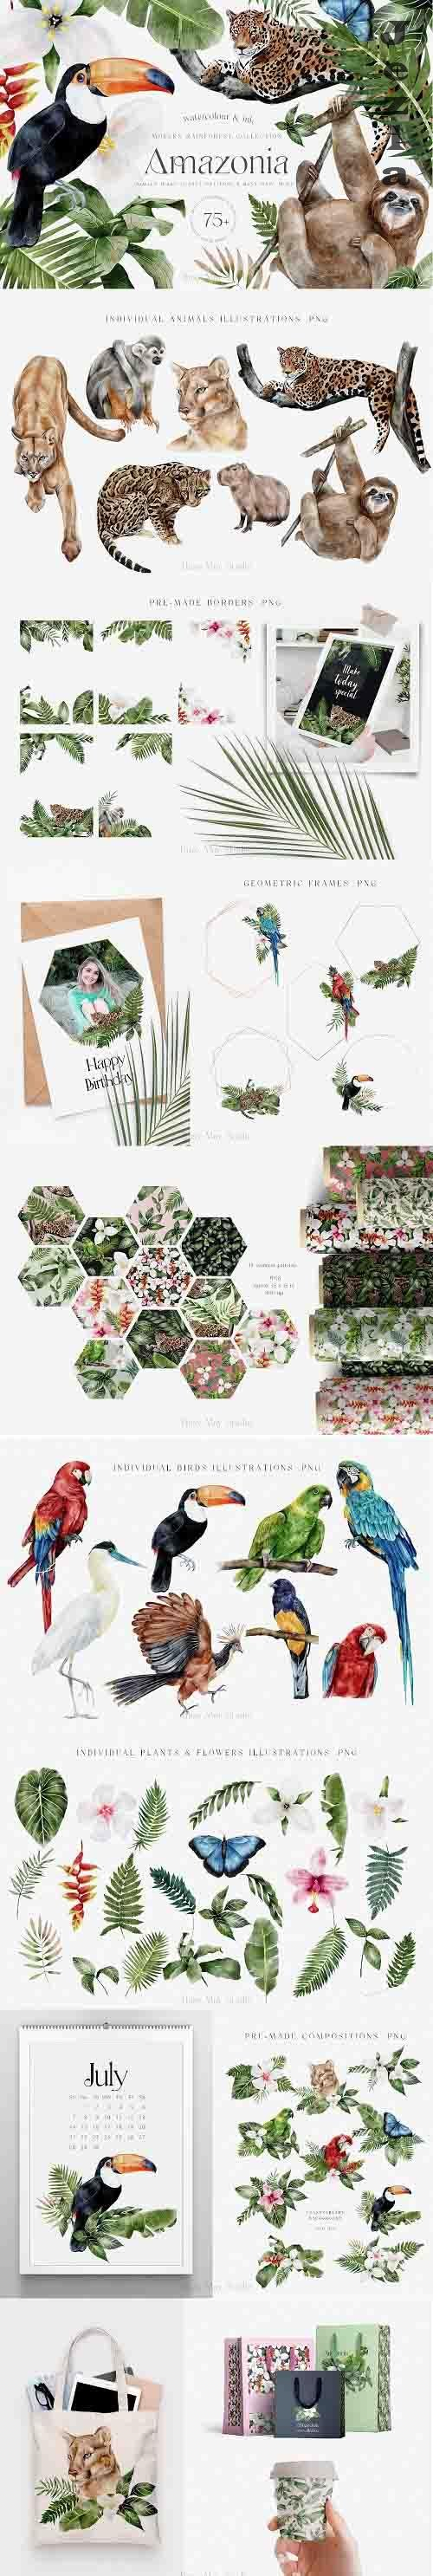 Tropical Rainforest Illustrations Collection and Patterns - 1408970